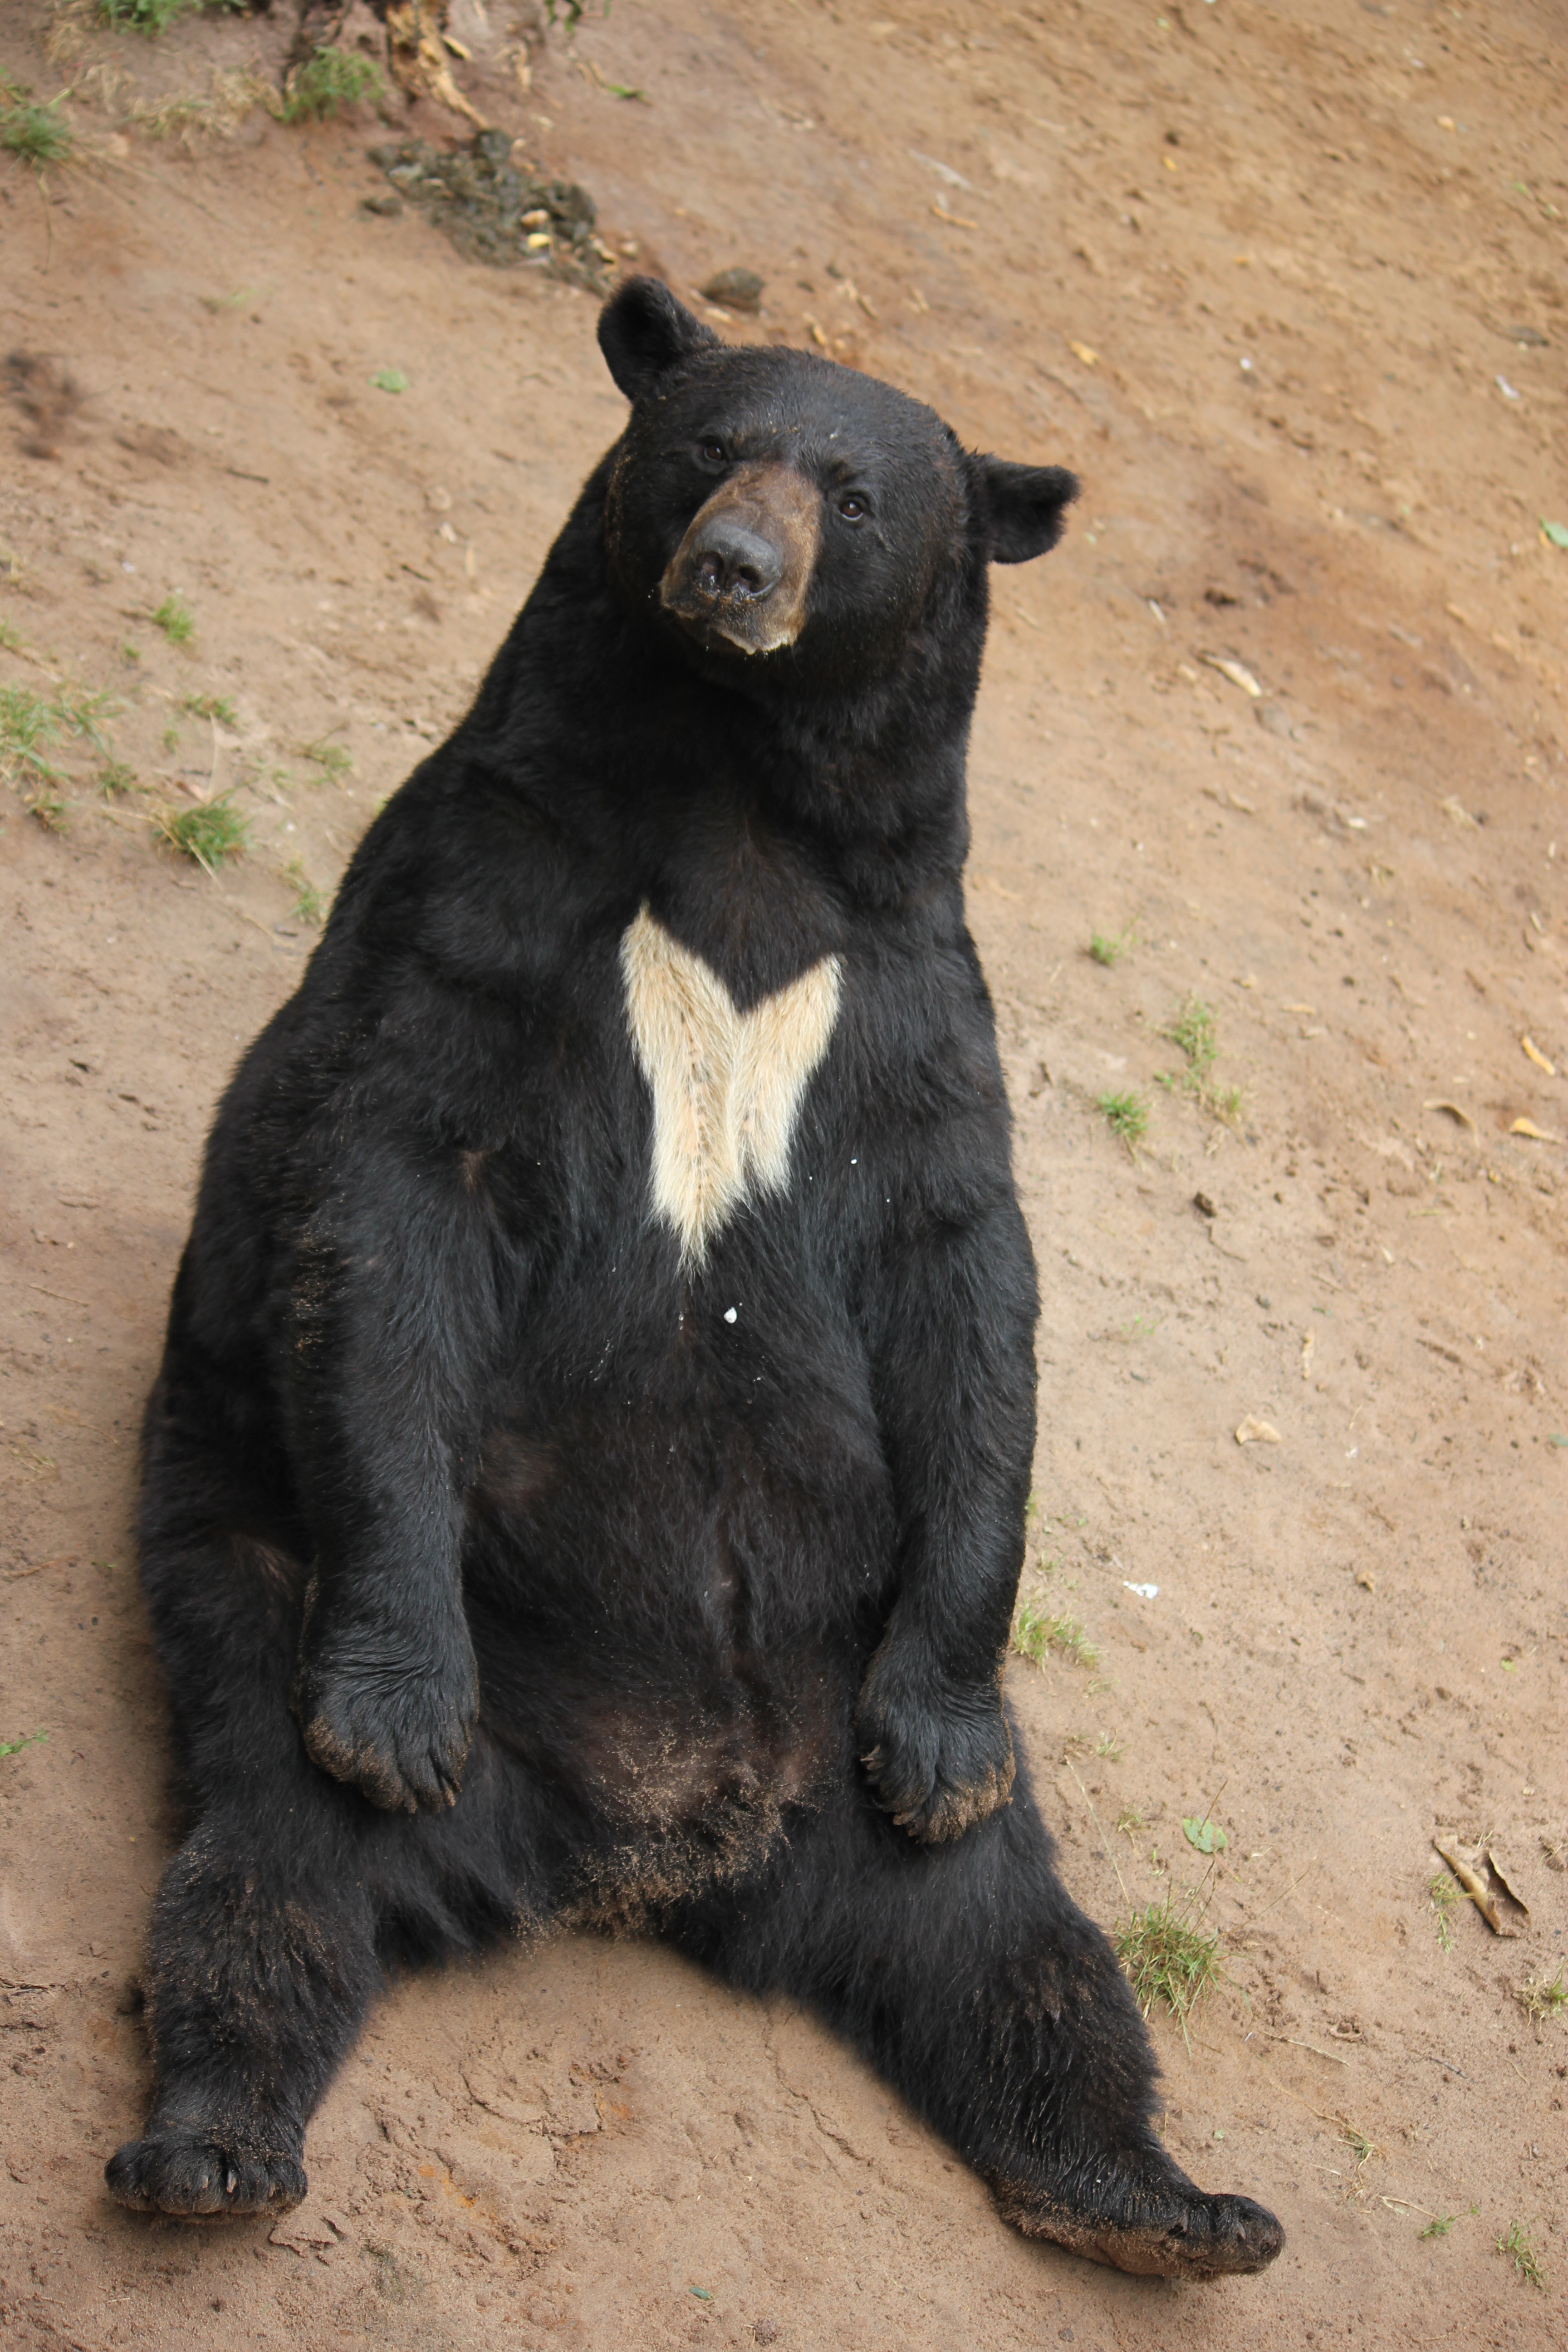 It is surprisingly difficult to get bears to smile, so I finally caught this Black Bear acting majestic..